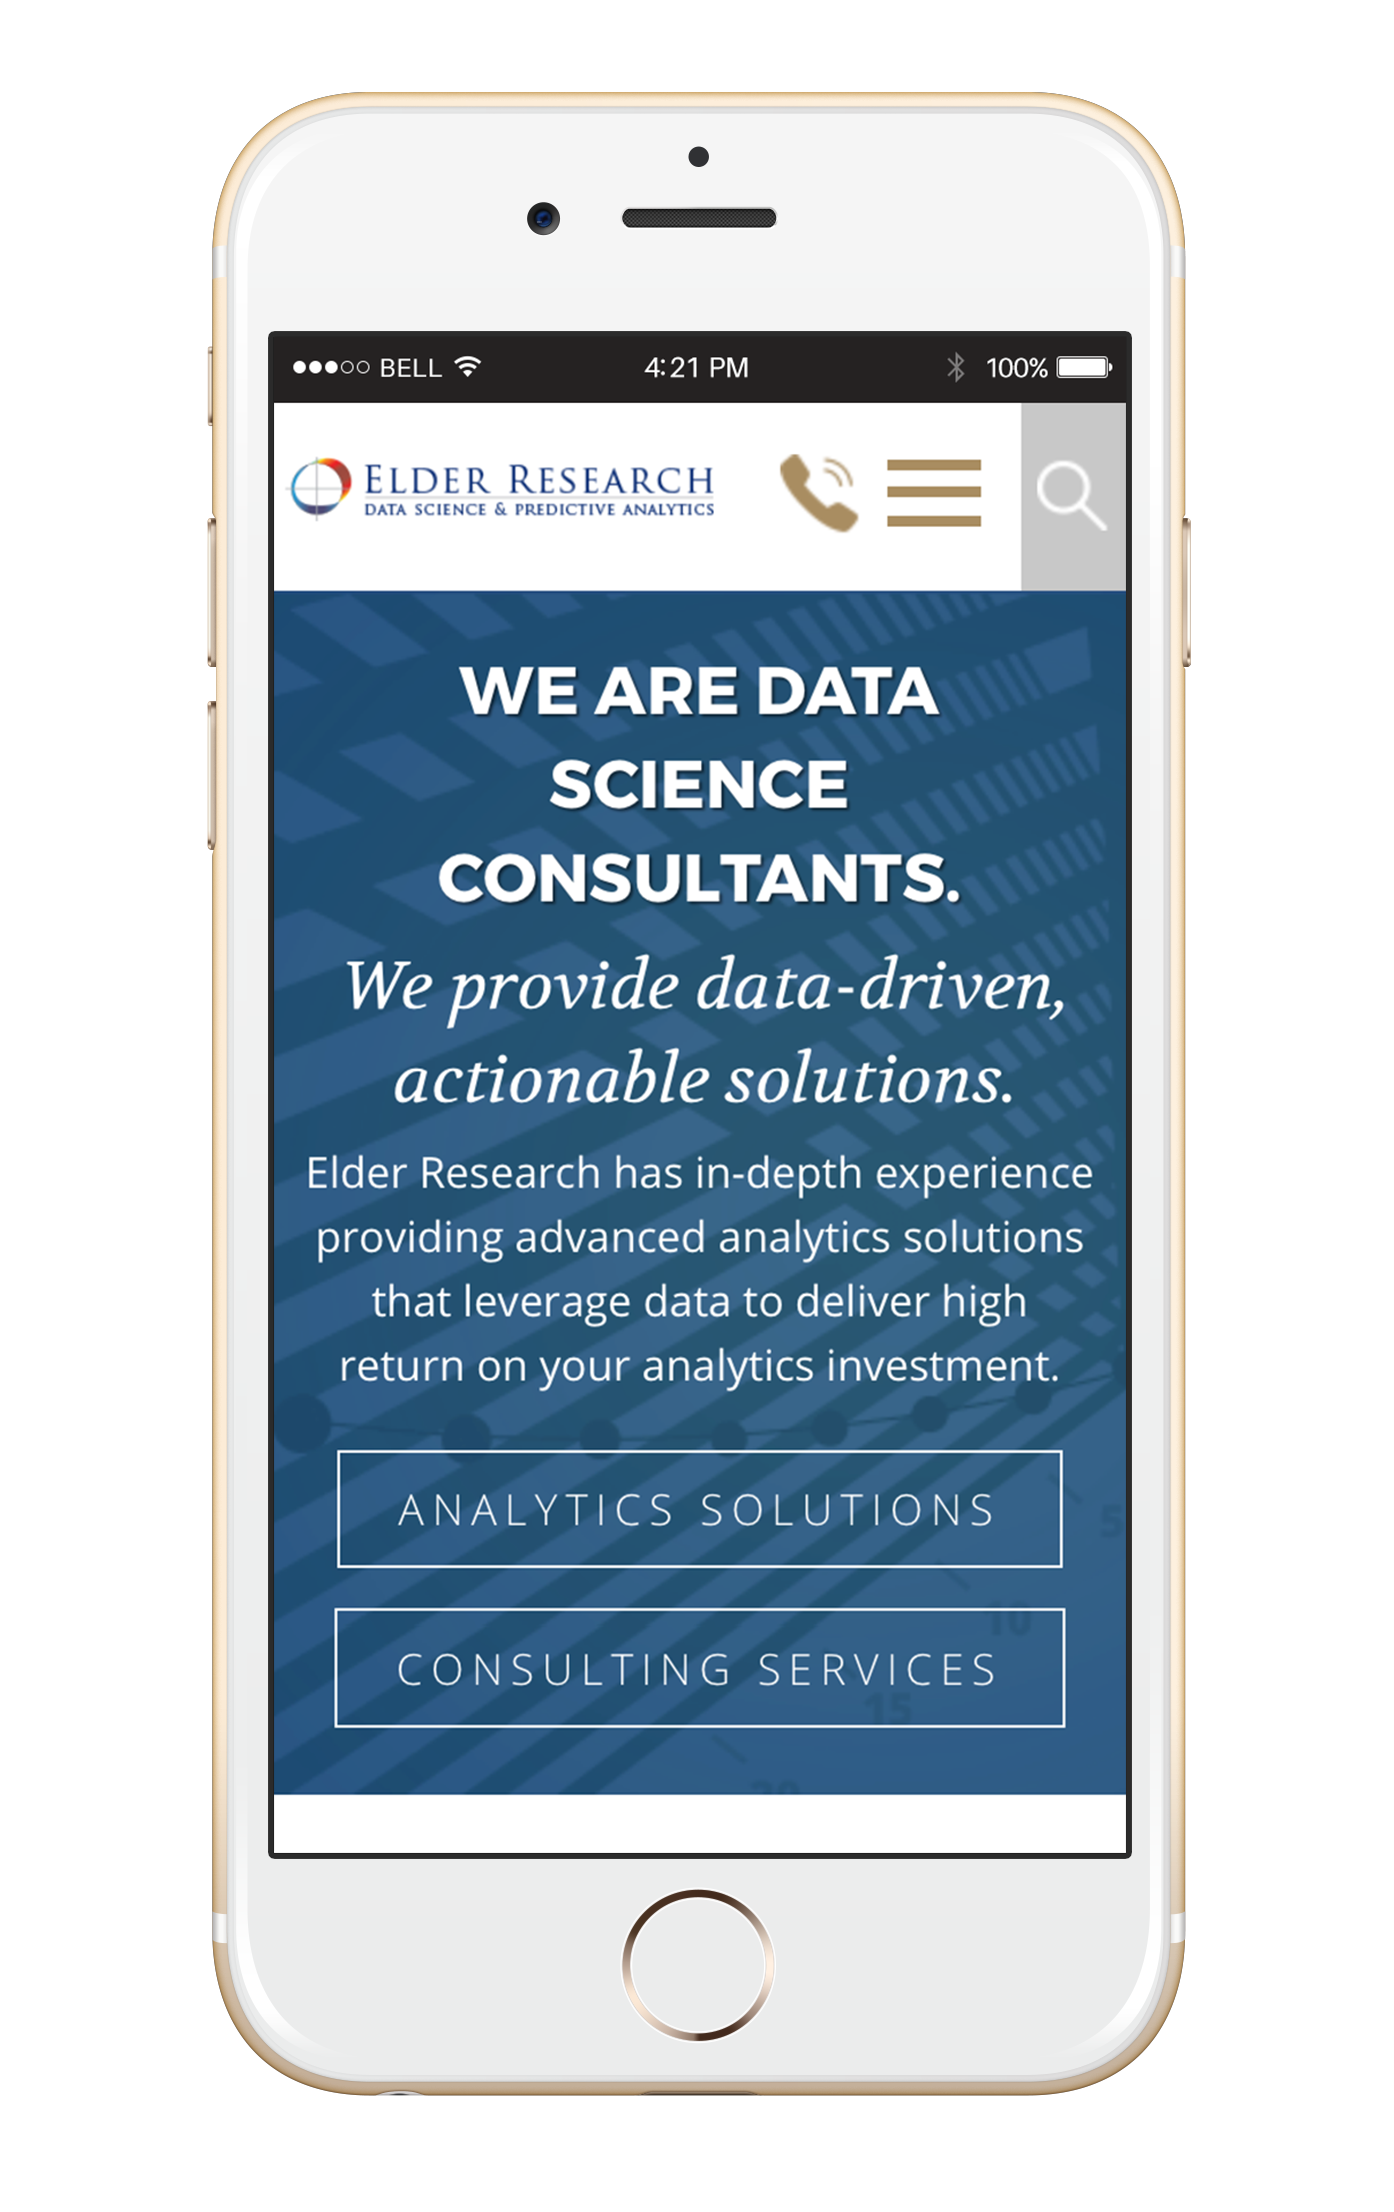 Elder Research website as displayed on a mobile phone